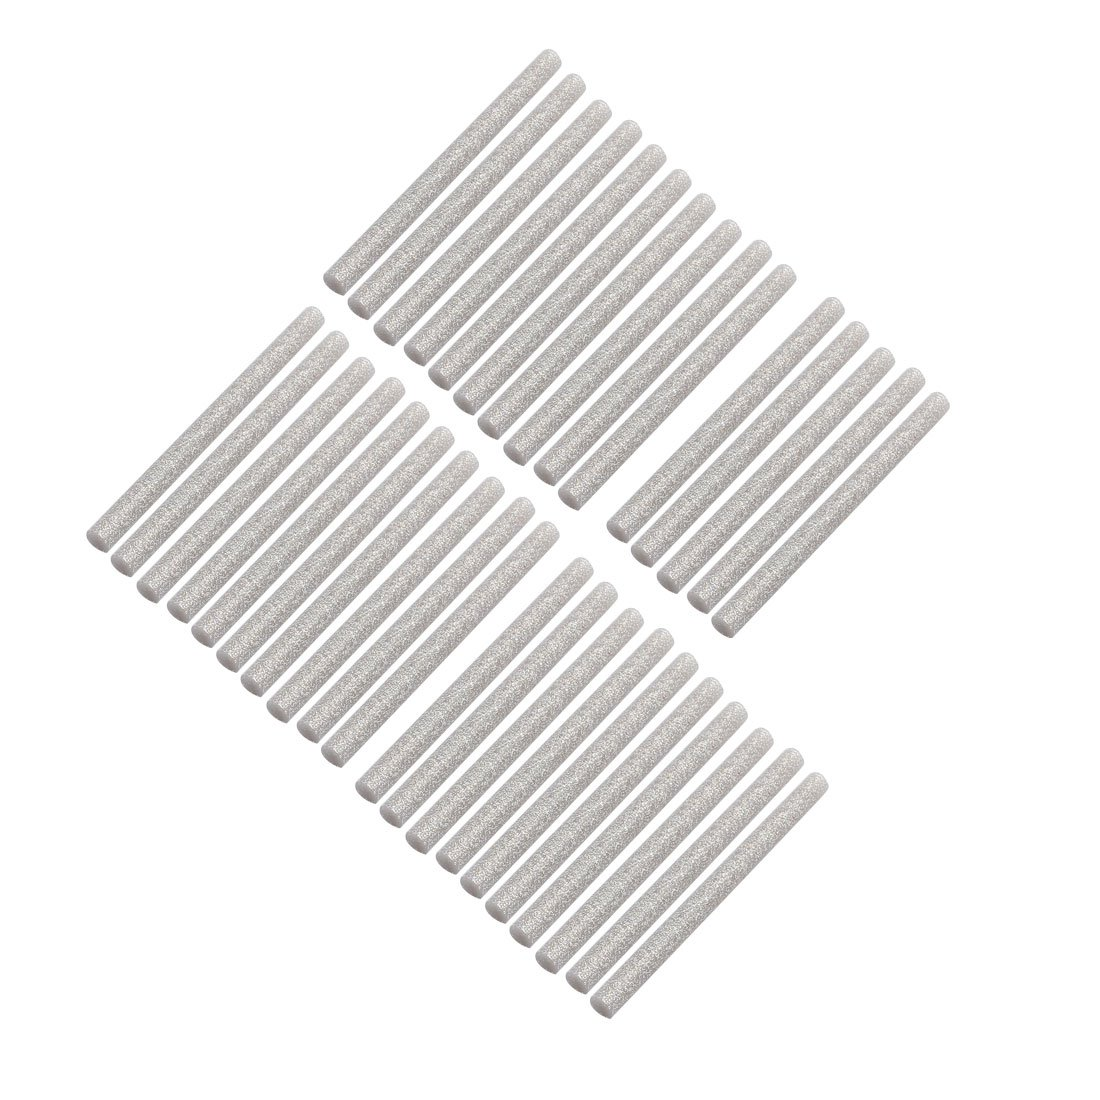 uxcell 35pcs 7mm x 100mm Hot Melt Glue Sticks Silver Tone for DIY Small Craft Projects